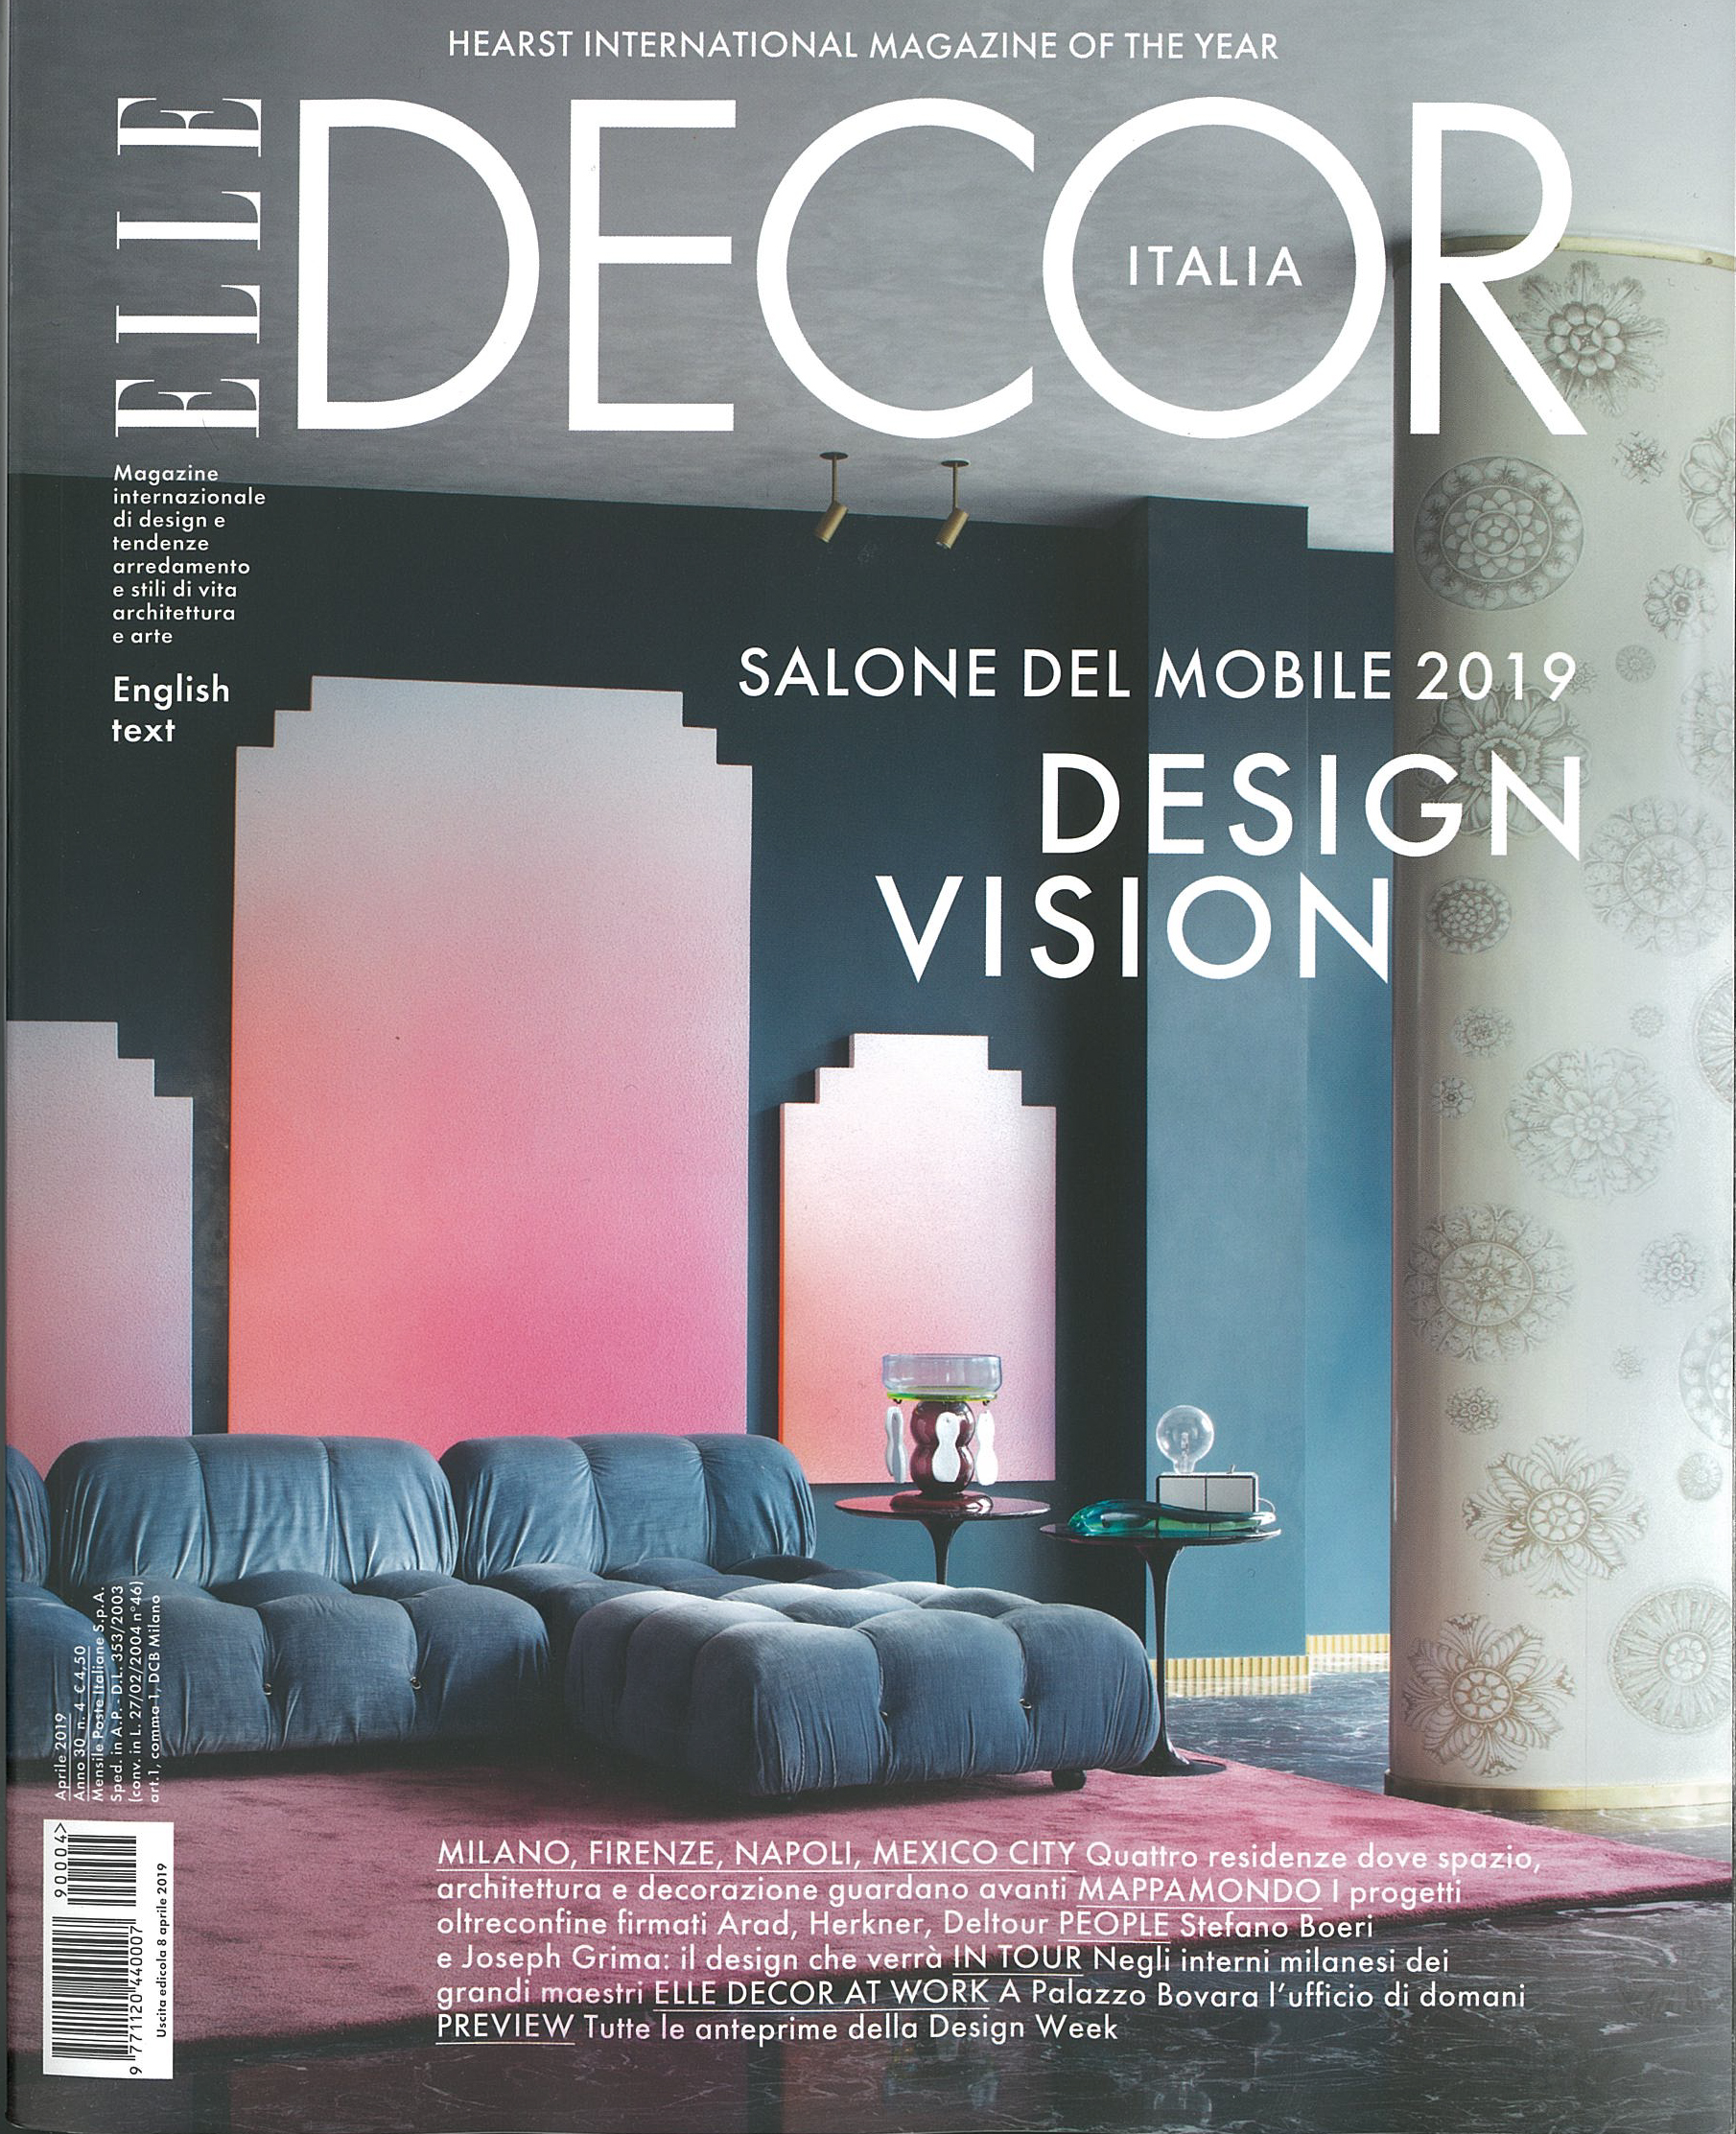 TP_Elle Decor_cover_April 2019.jpg